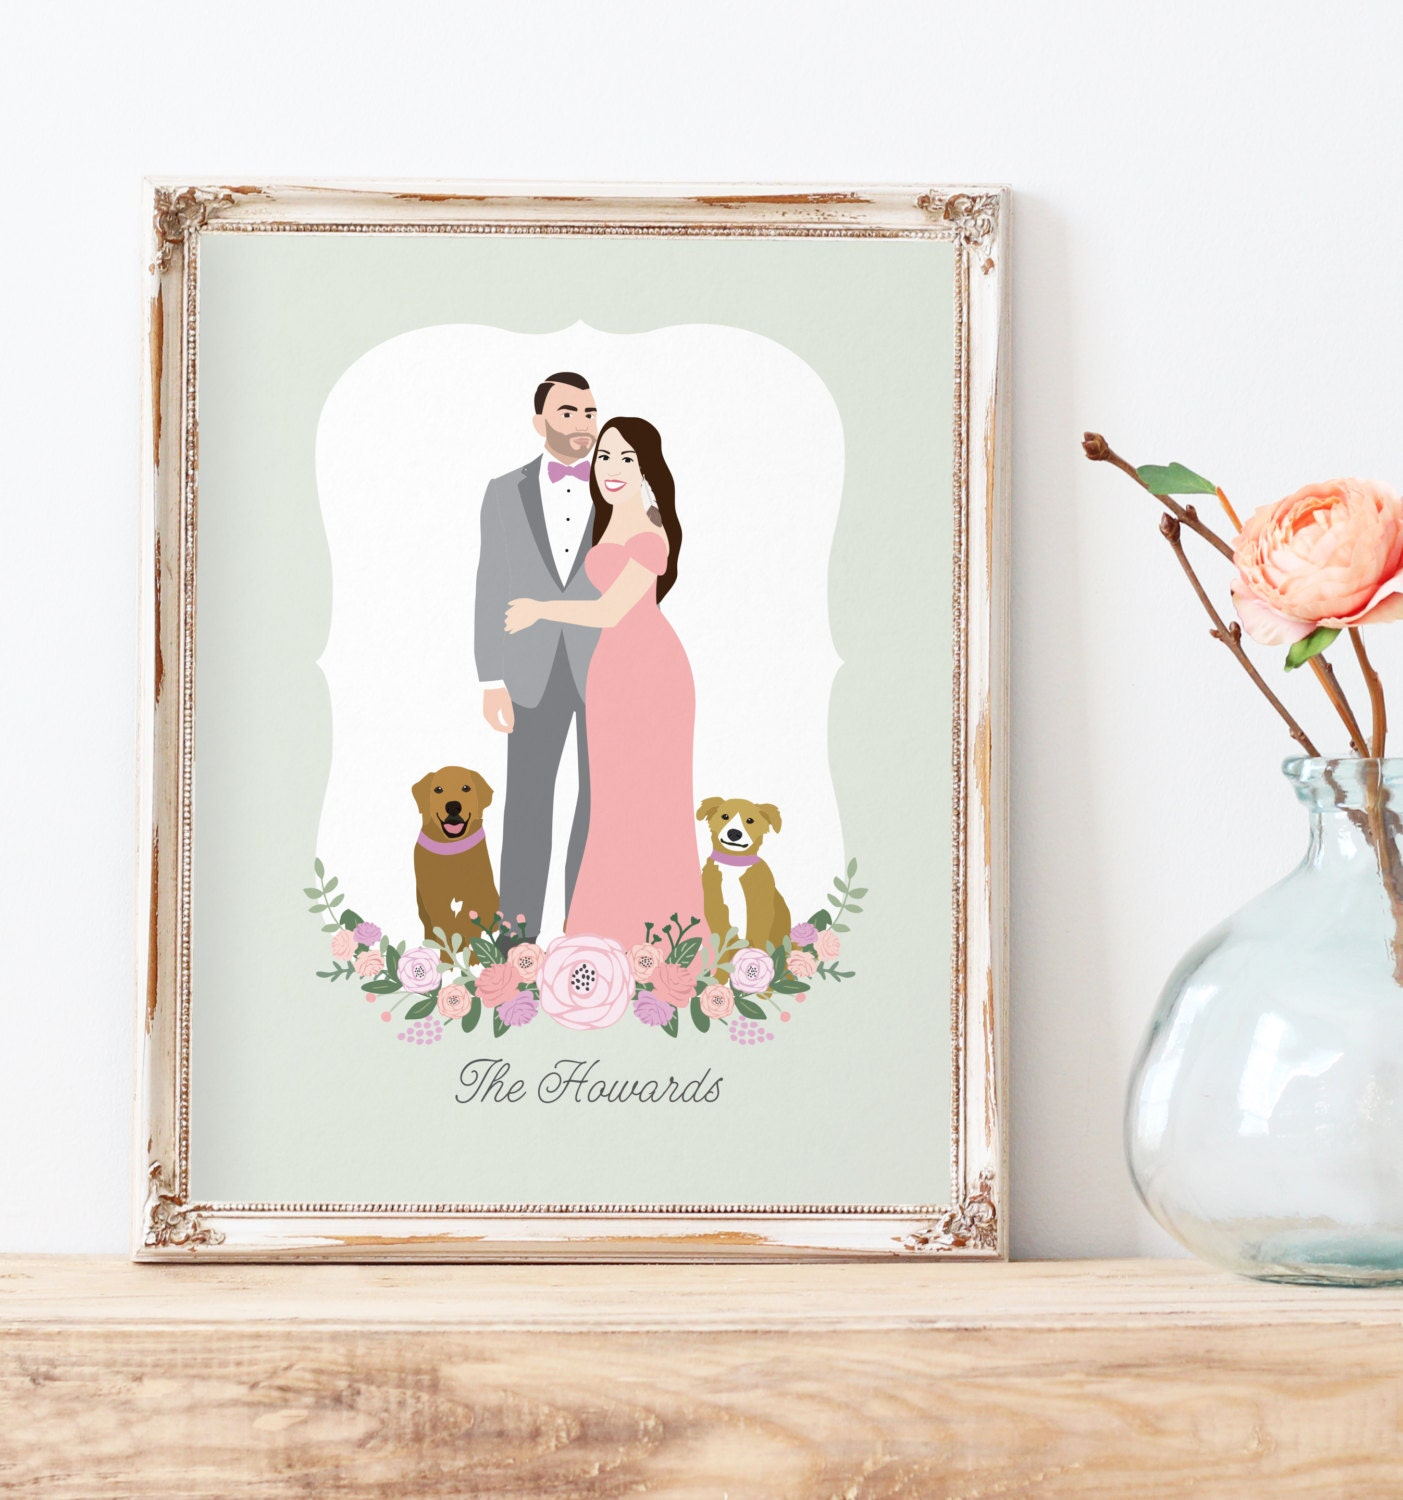 Personalised Wedding Gift Portrait : Custom couple portrait Custom Wedding Gift Personalized